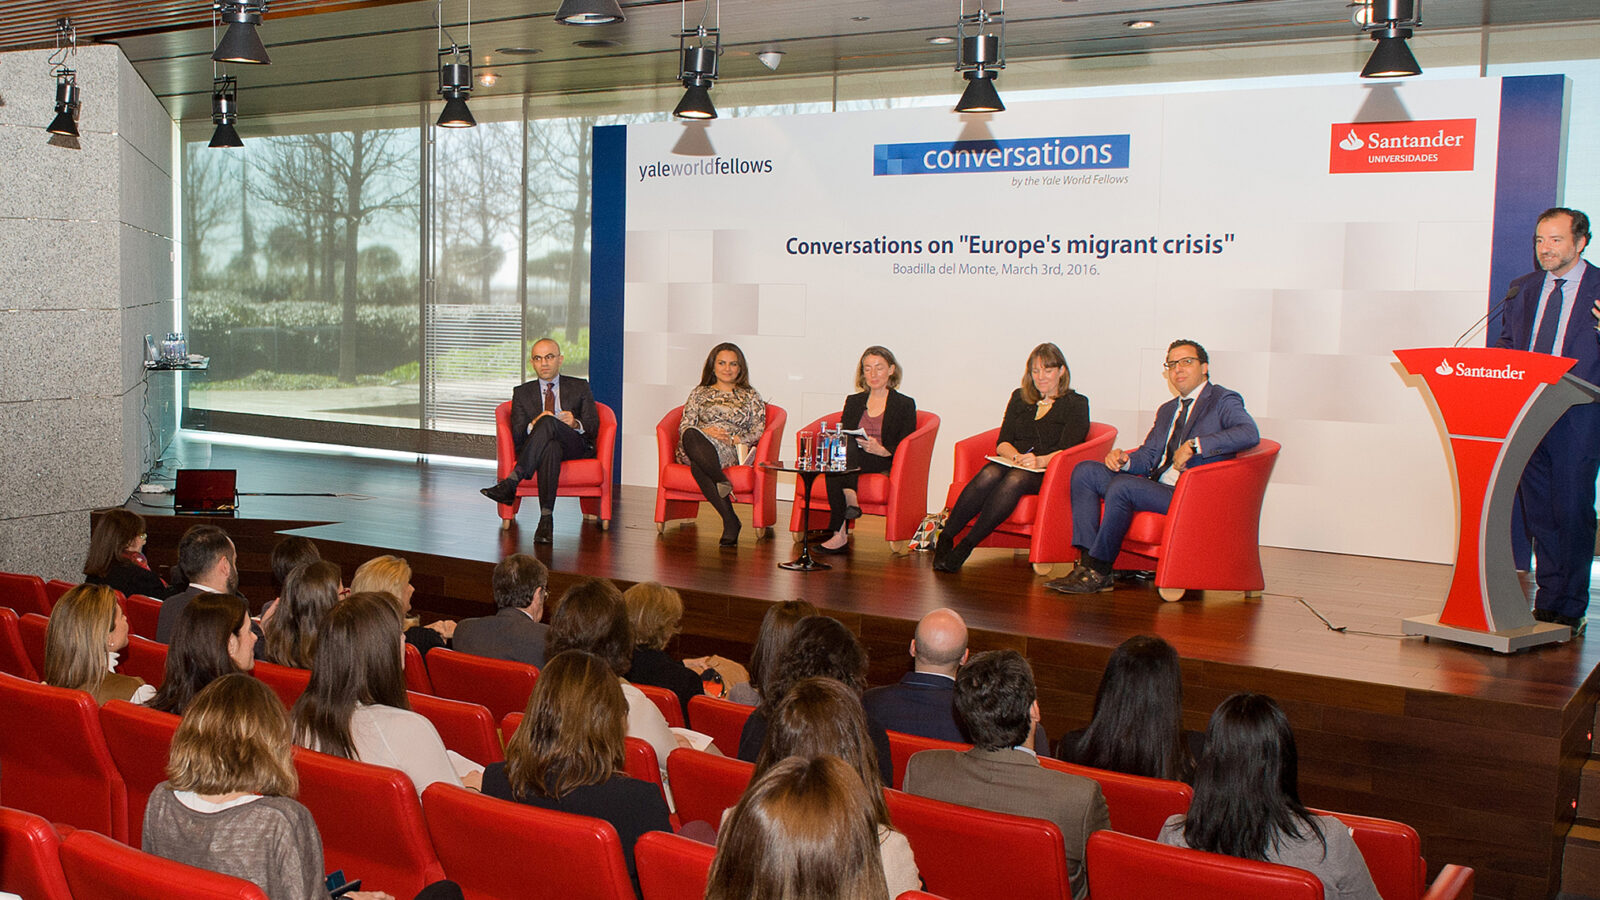 Yale co-hosts Conversations Without Borders event in Madrid photo